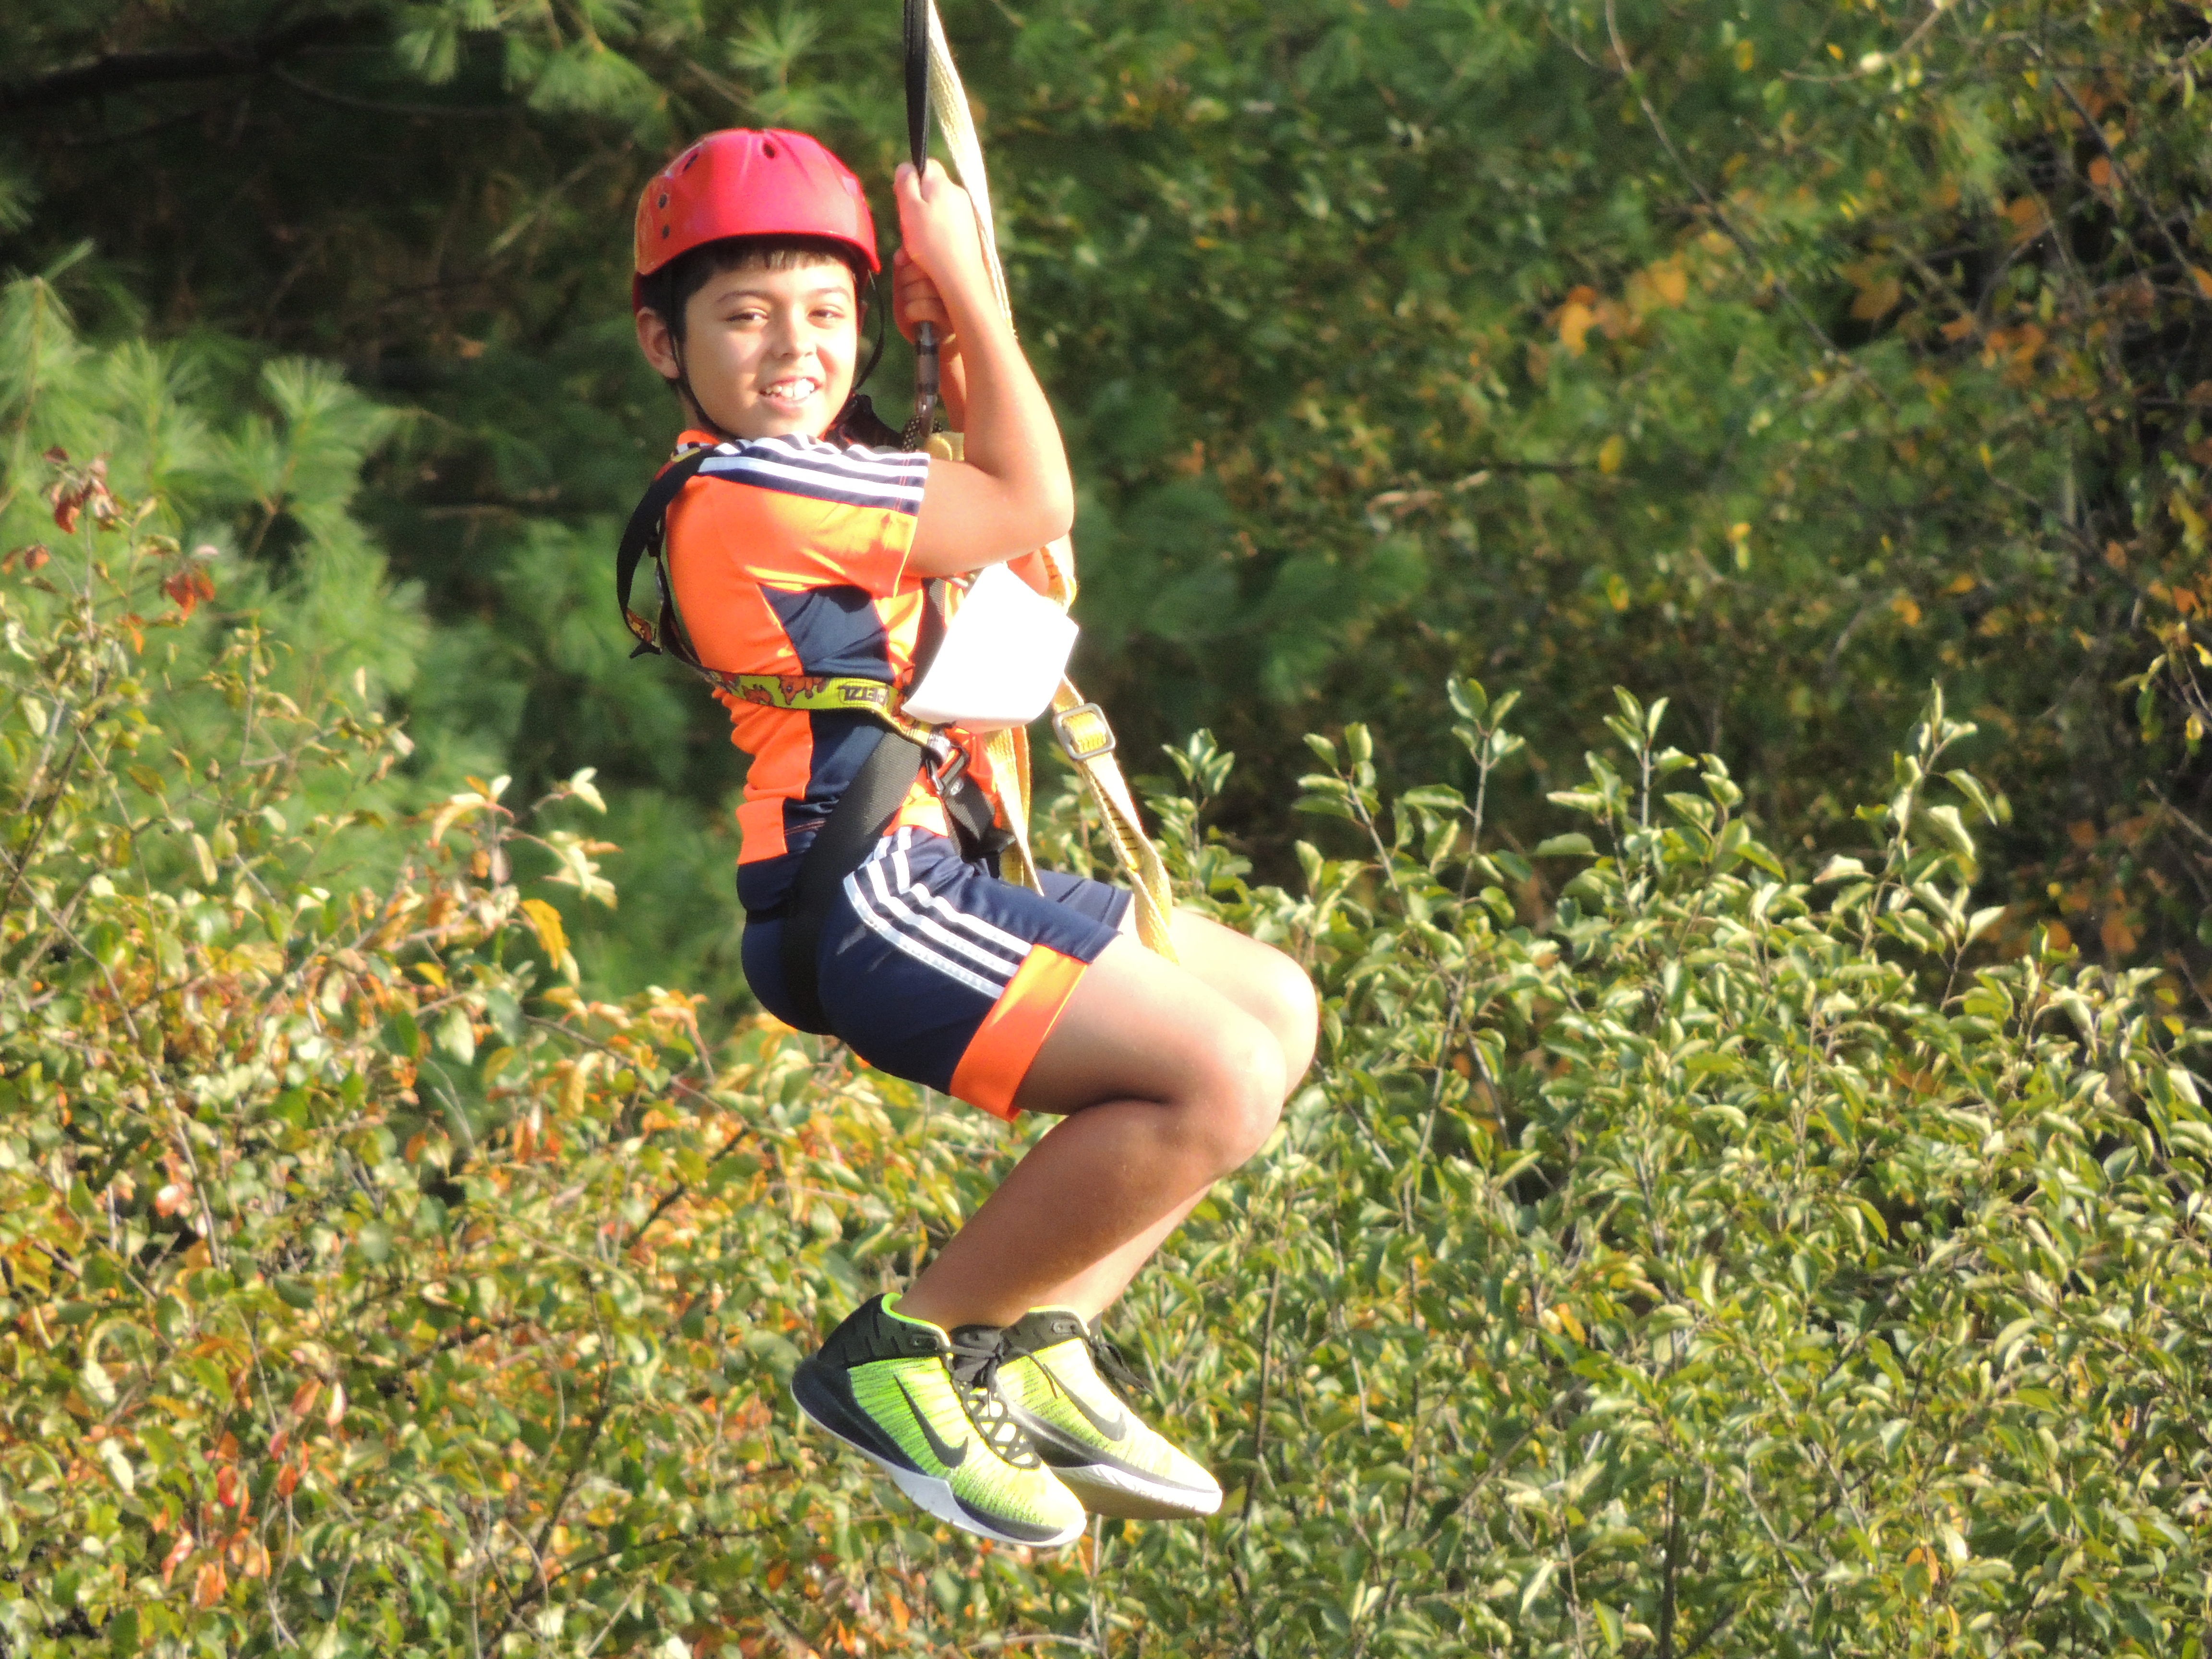 A zip line is a unique adventure that can help push limits and provides a very thrilling ri ...  sc 1 st  WingSpeed Adventures & Zip Lines by Wingspeed Adventures